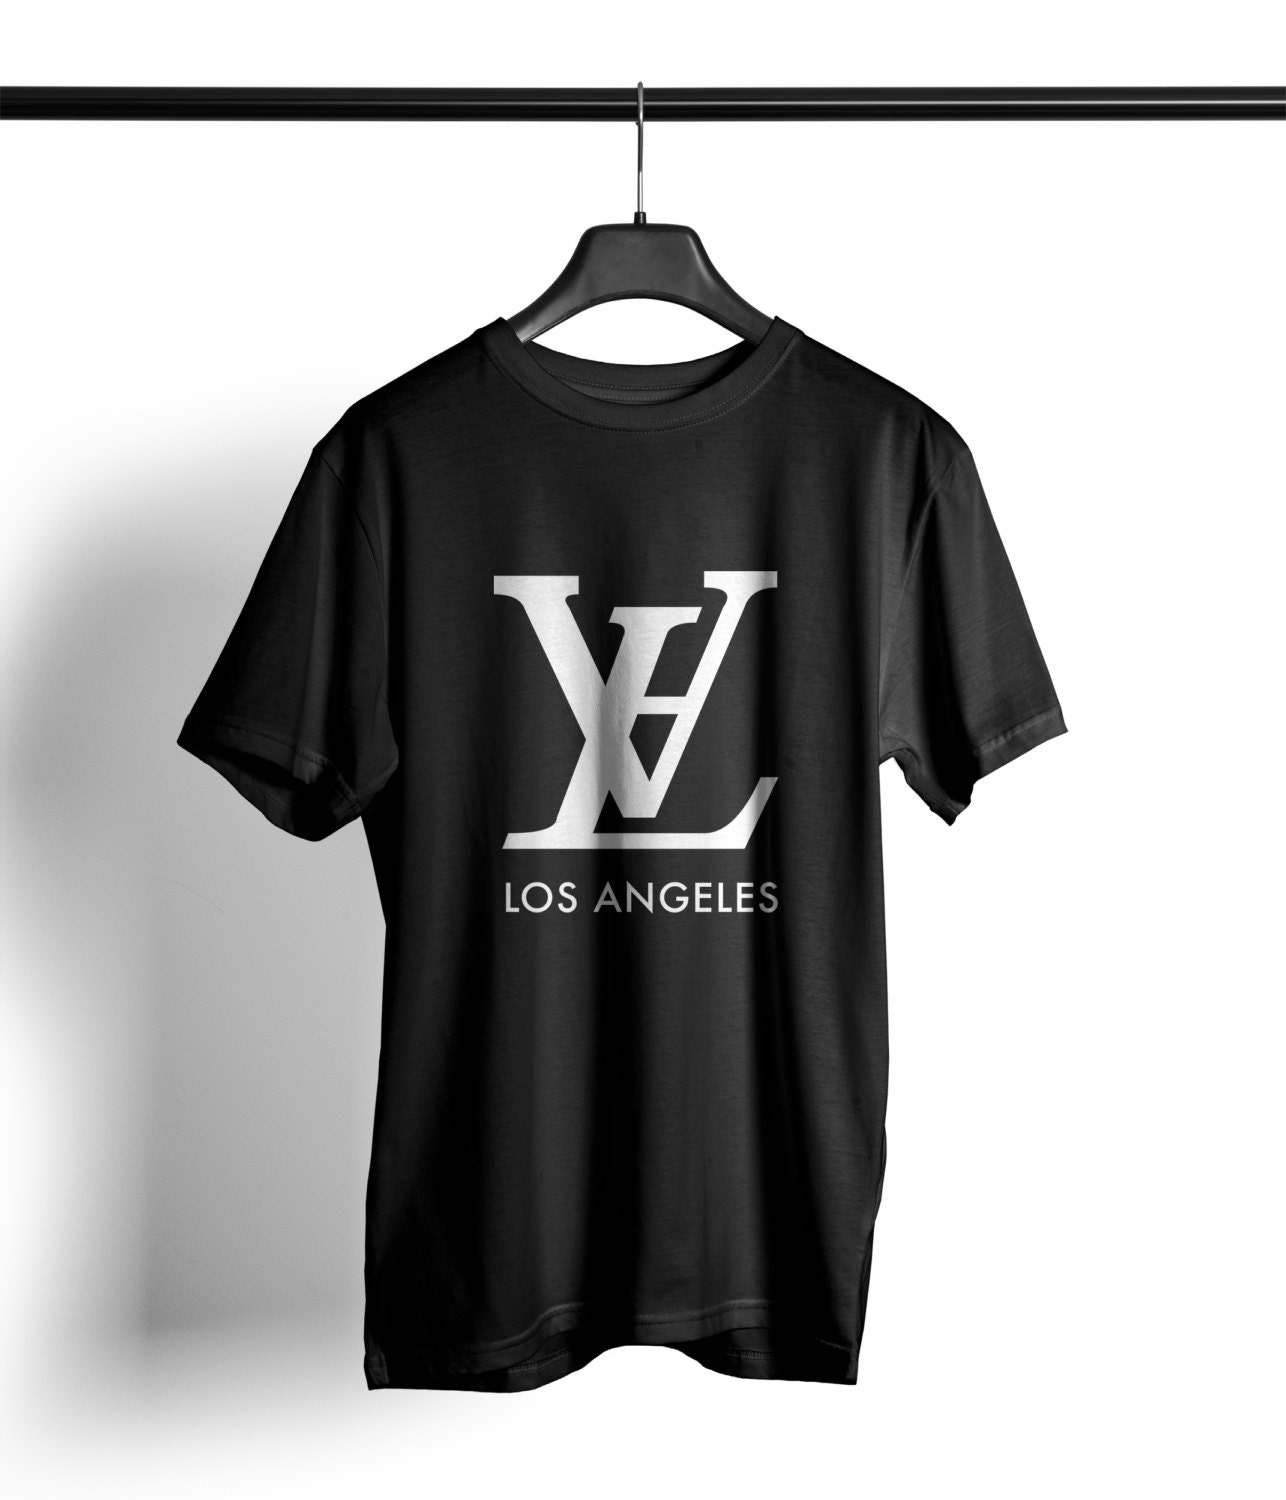 Jay z black t shirt white cross - La T Shirt Unisex Kanye West Tumblr California California Cali Hollywood Hipster Delevingne Jay Z Los